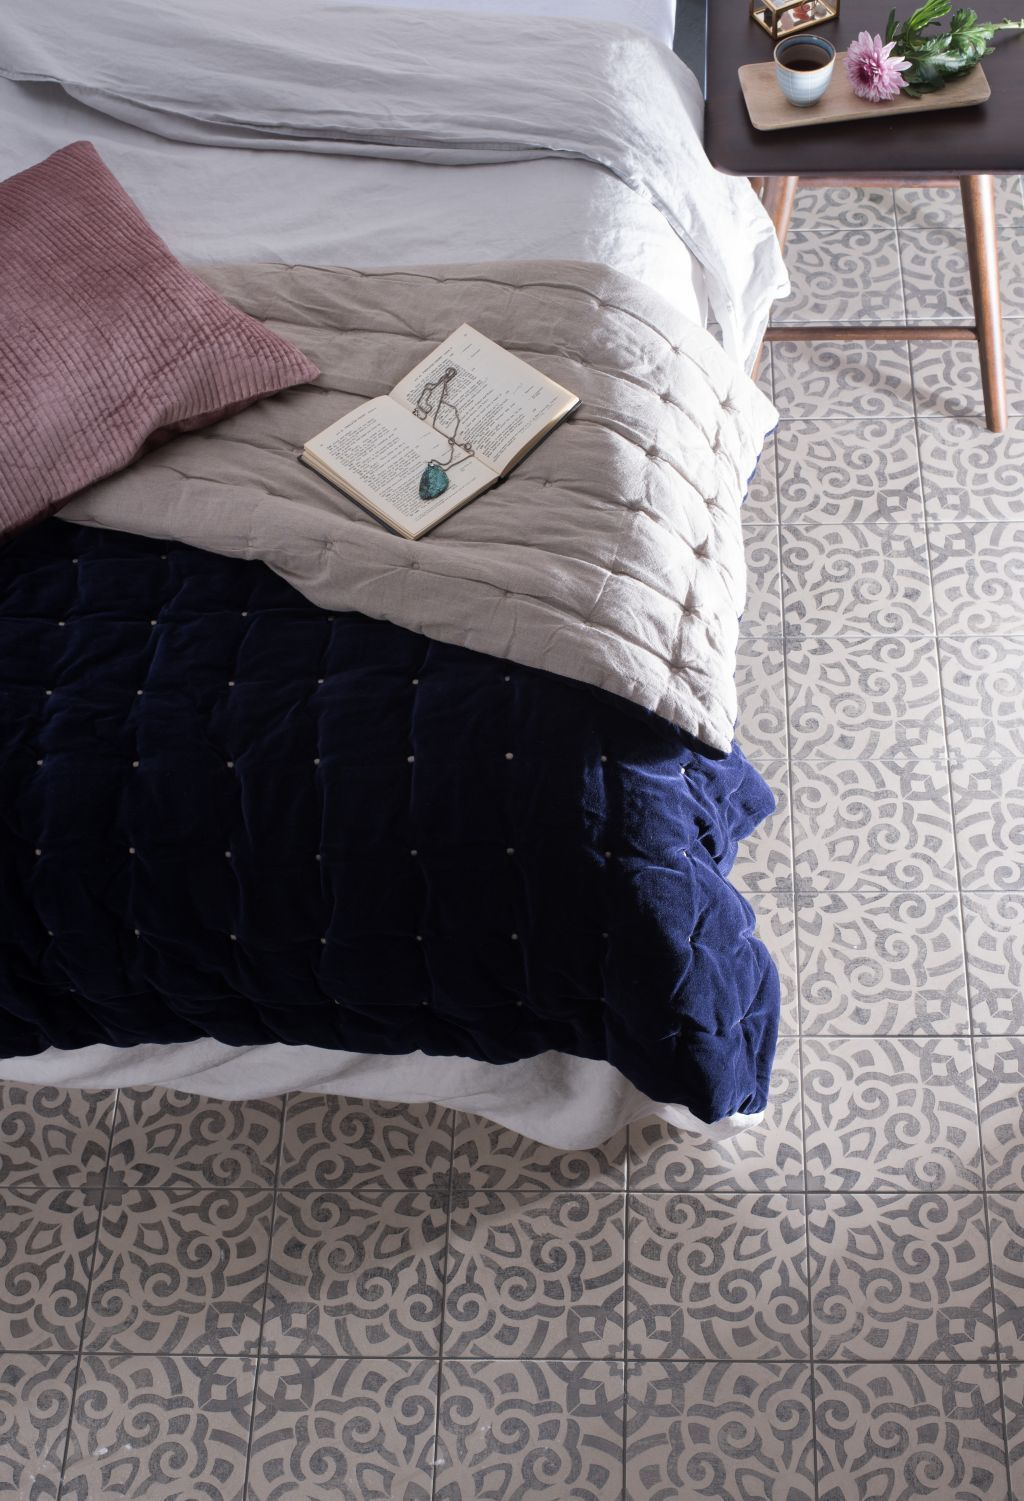 Tile ideas: while tiles are not the go-to choice for bedroom flooring, they are actually a great choice. Pretty vintage tiles add pattern and texture to the room while also being a maintenance choice. Make the space feel cosier by adding a rug or two. Find the perfect style of patterned tiles for your home with our guide. #vintageinteriordesign #bedroomdesign